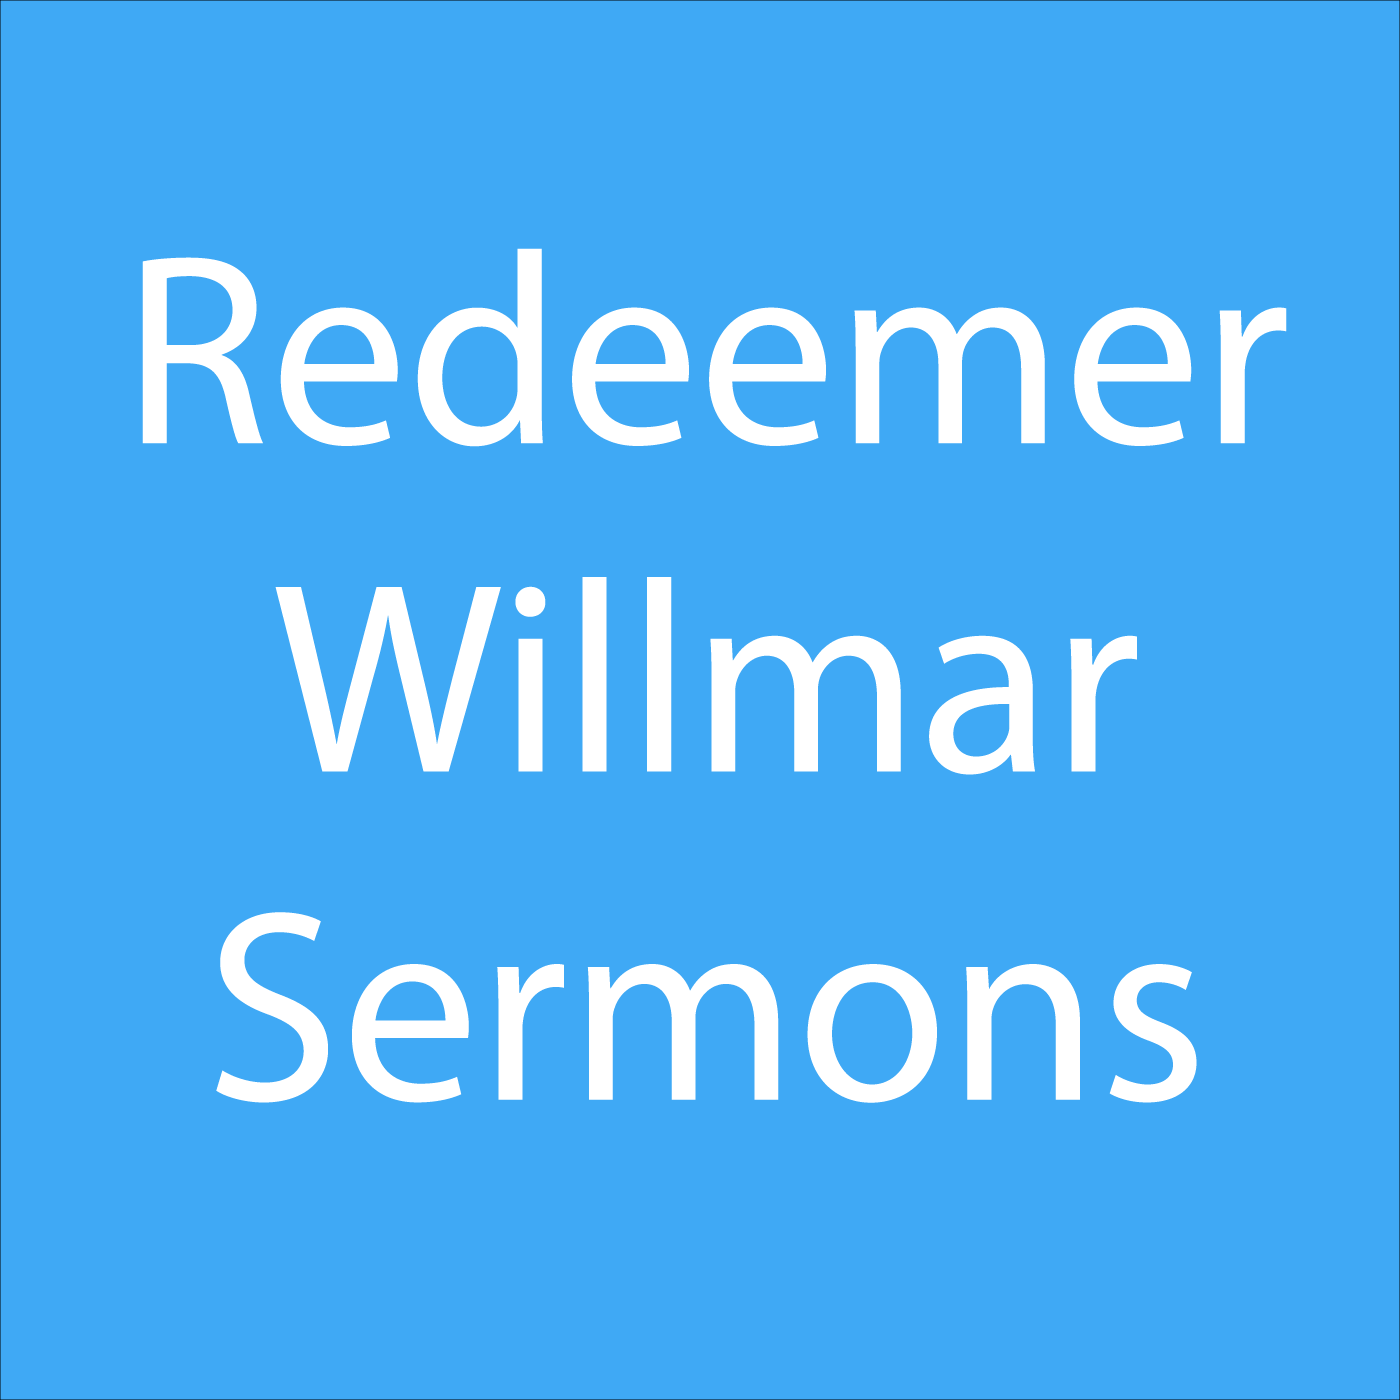 Redeemer Willmar Sermons